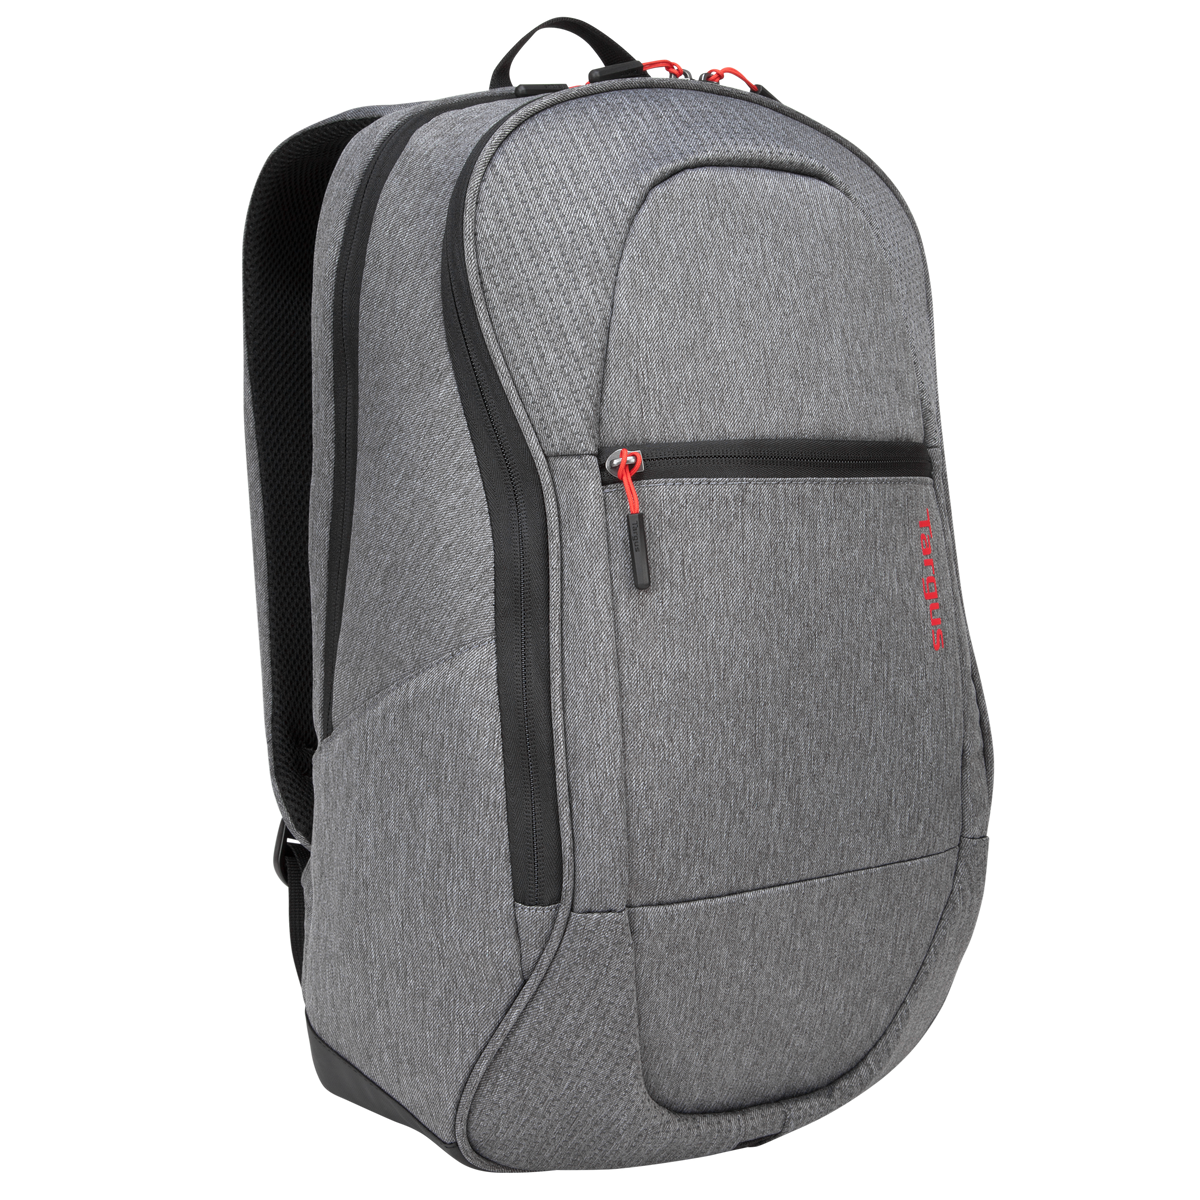 15 6 Quot Urban Commuter Backpack Gray Tsb89604us Laptop